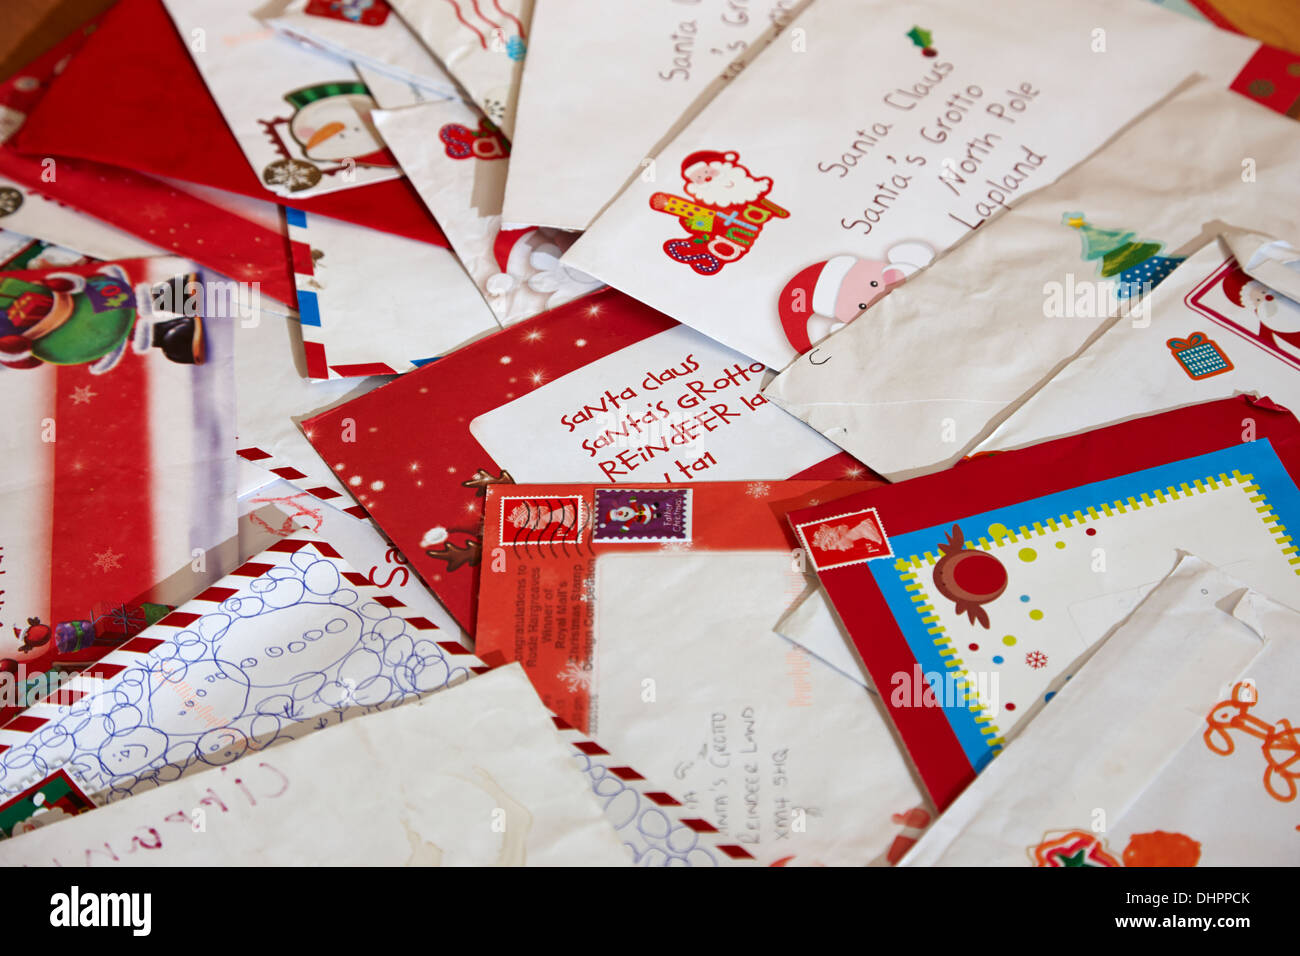 Santa mail stock photos santa mail stock images alamy pile of childrens christmas letters to santa stock image spiritdancerdesigns Choice Image